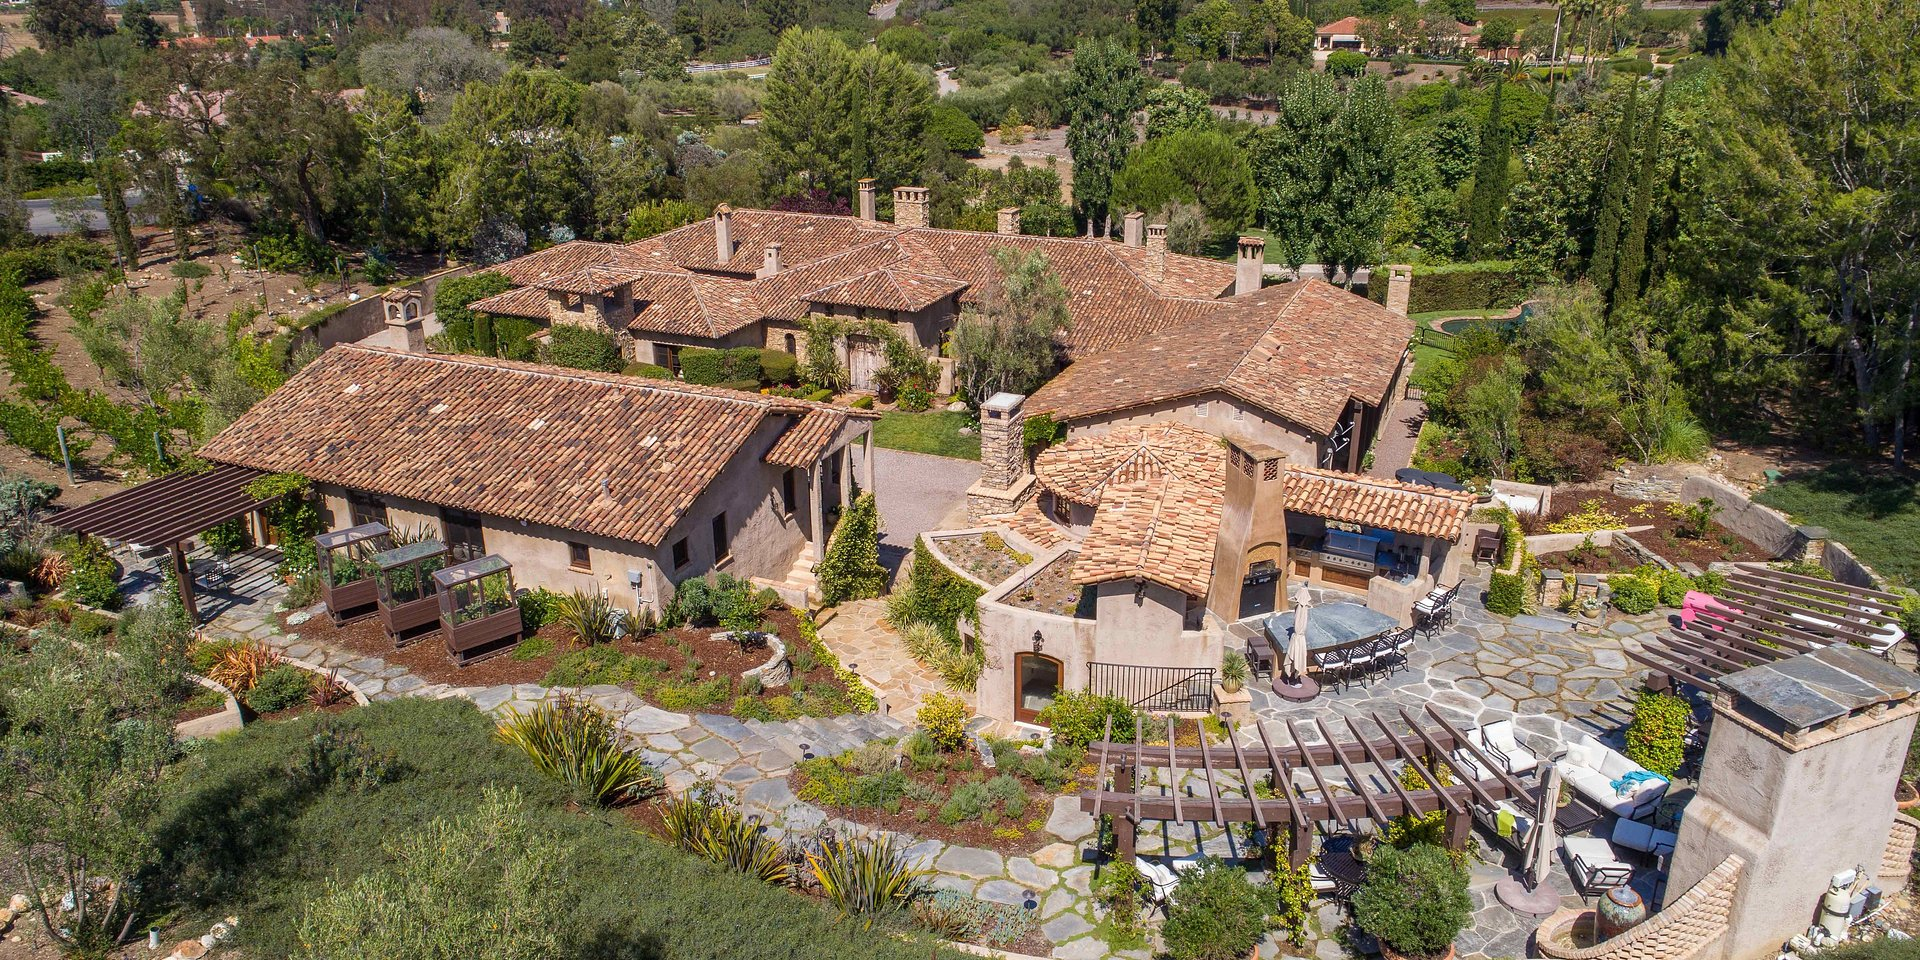 Coldwell Banker Residential Brokerage Lists Rancho Santa Fe Property for $10.995 Million